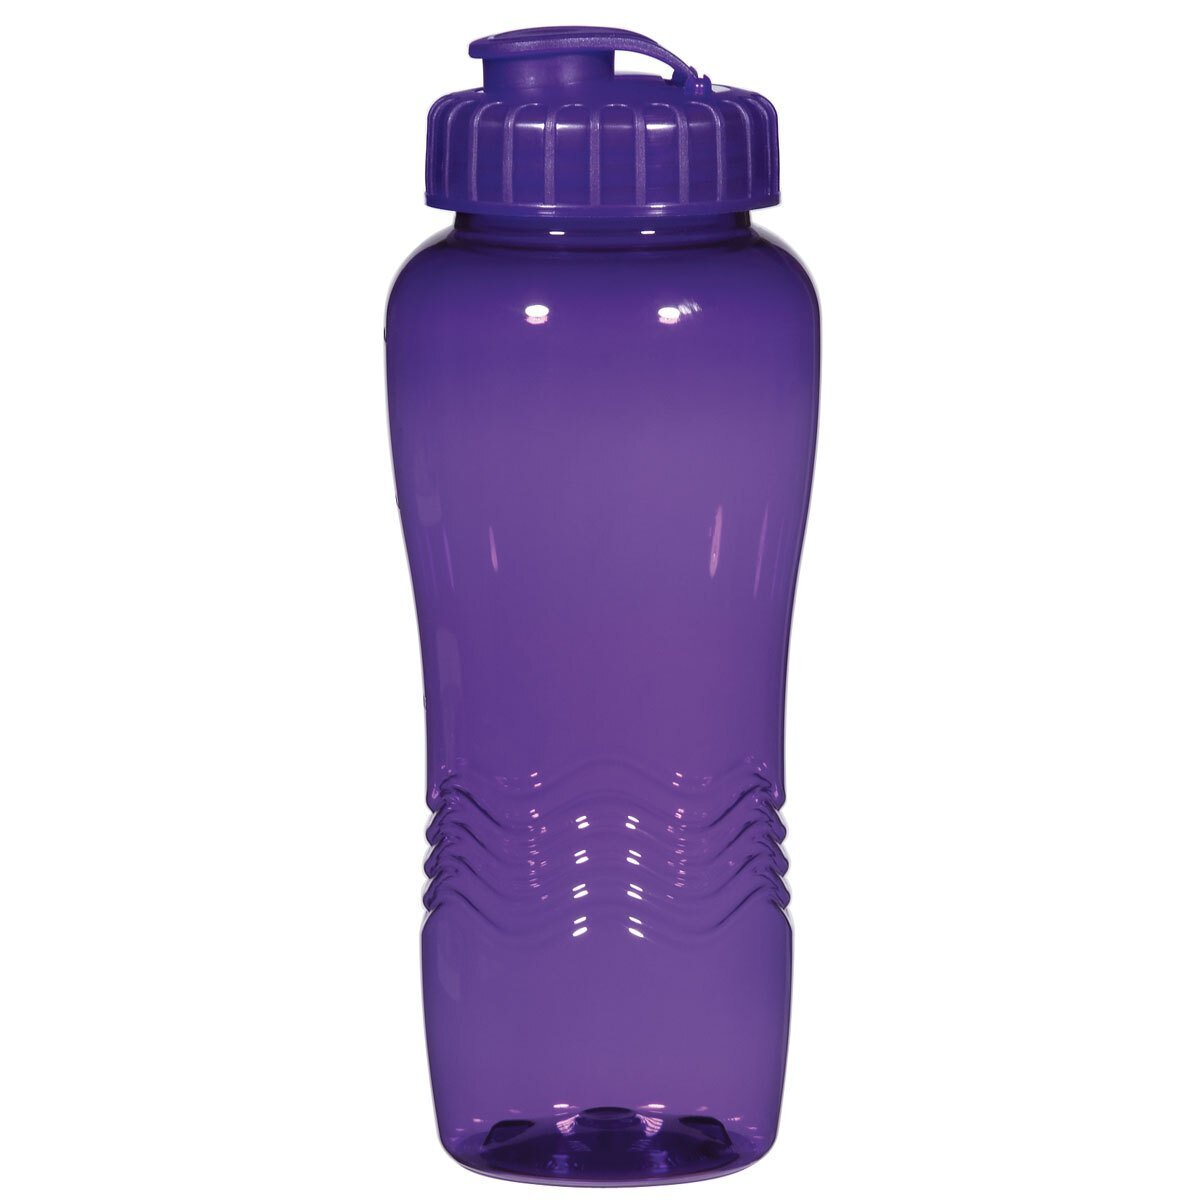 Ripple Grip Fitness Bottle with Super Sipper Lid, 26oz.